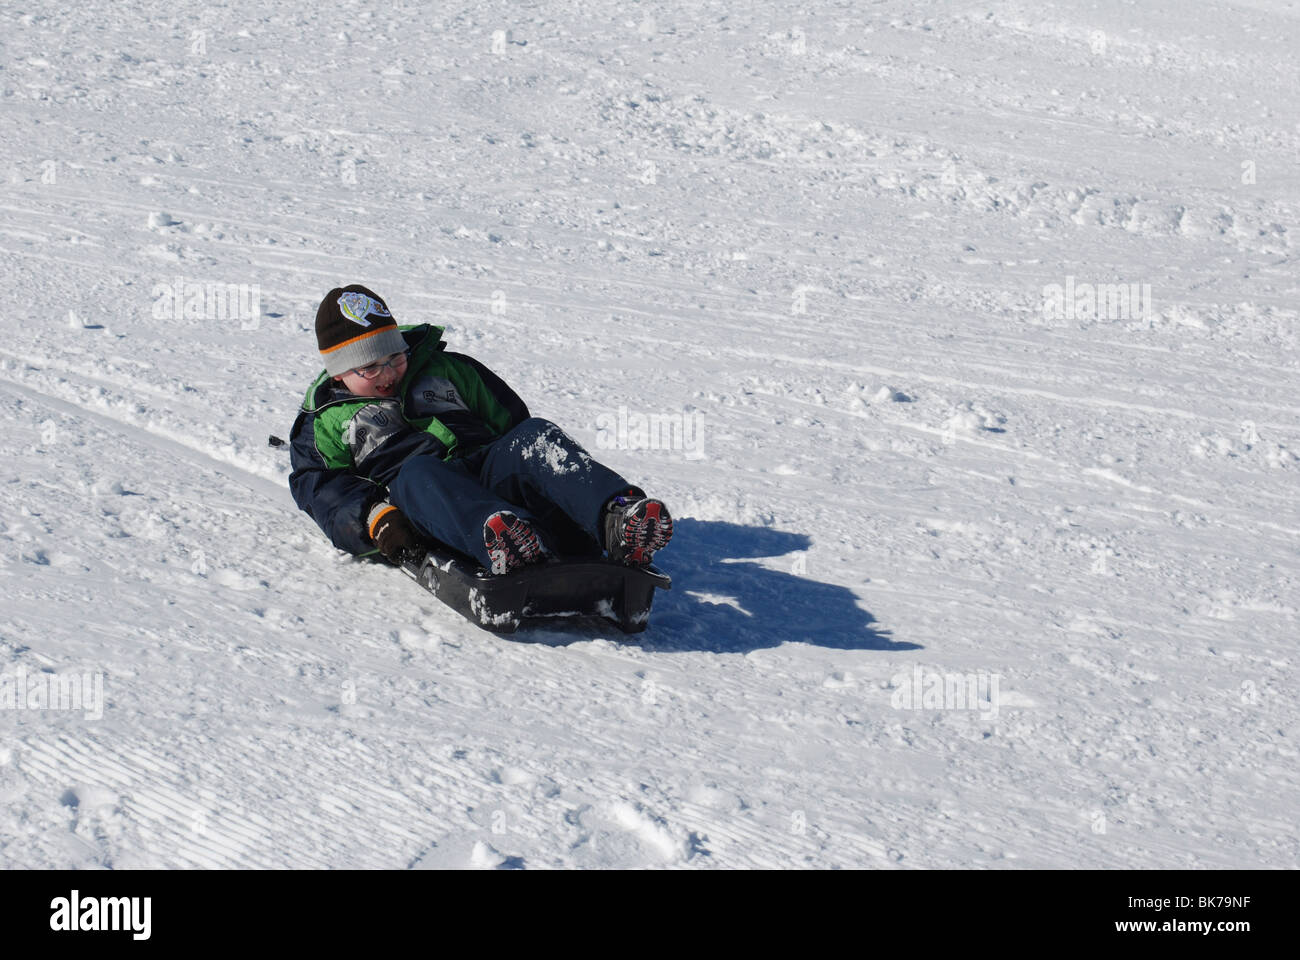 Boy of 7 slides down the snowy slopes on a sleigh view from front - Stock Image